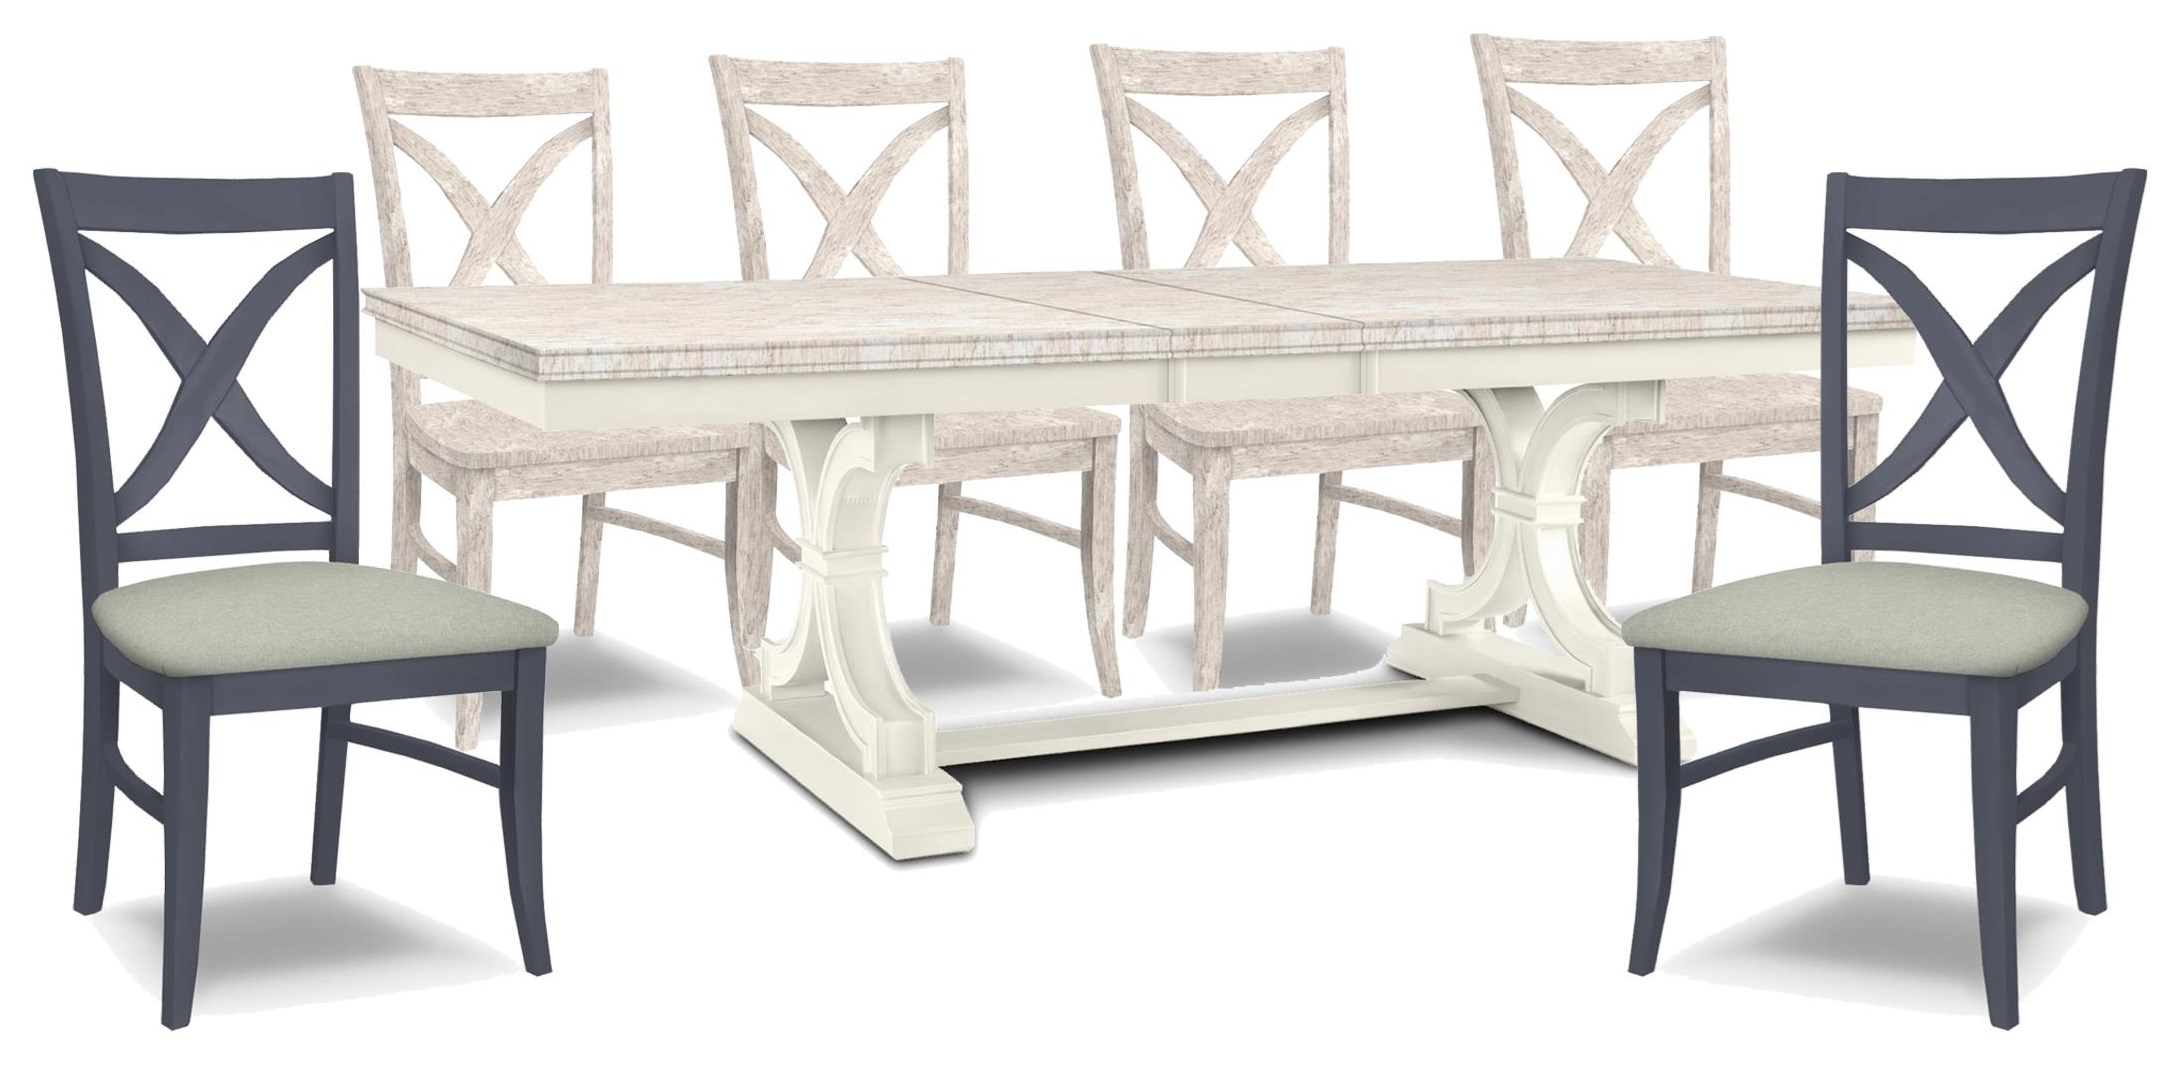 SELECT Dining Table, 4 Chairs, 2 Upholsered Chair by John Thomas at Johnny Janosik